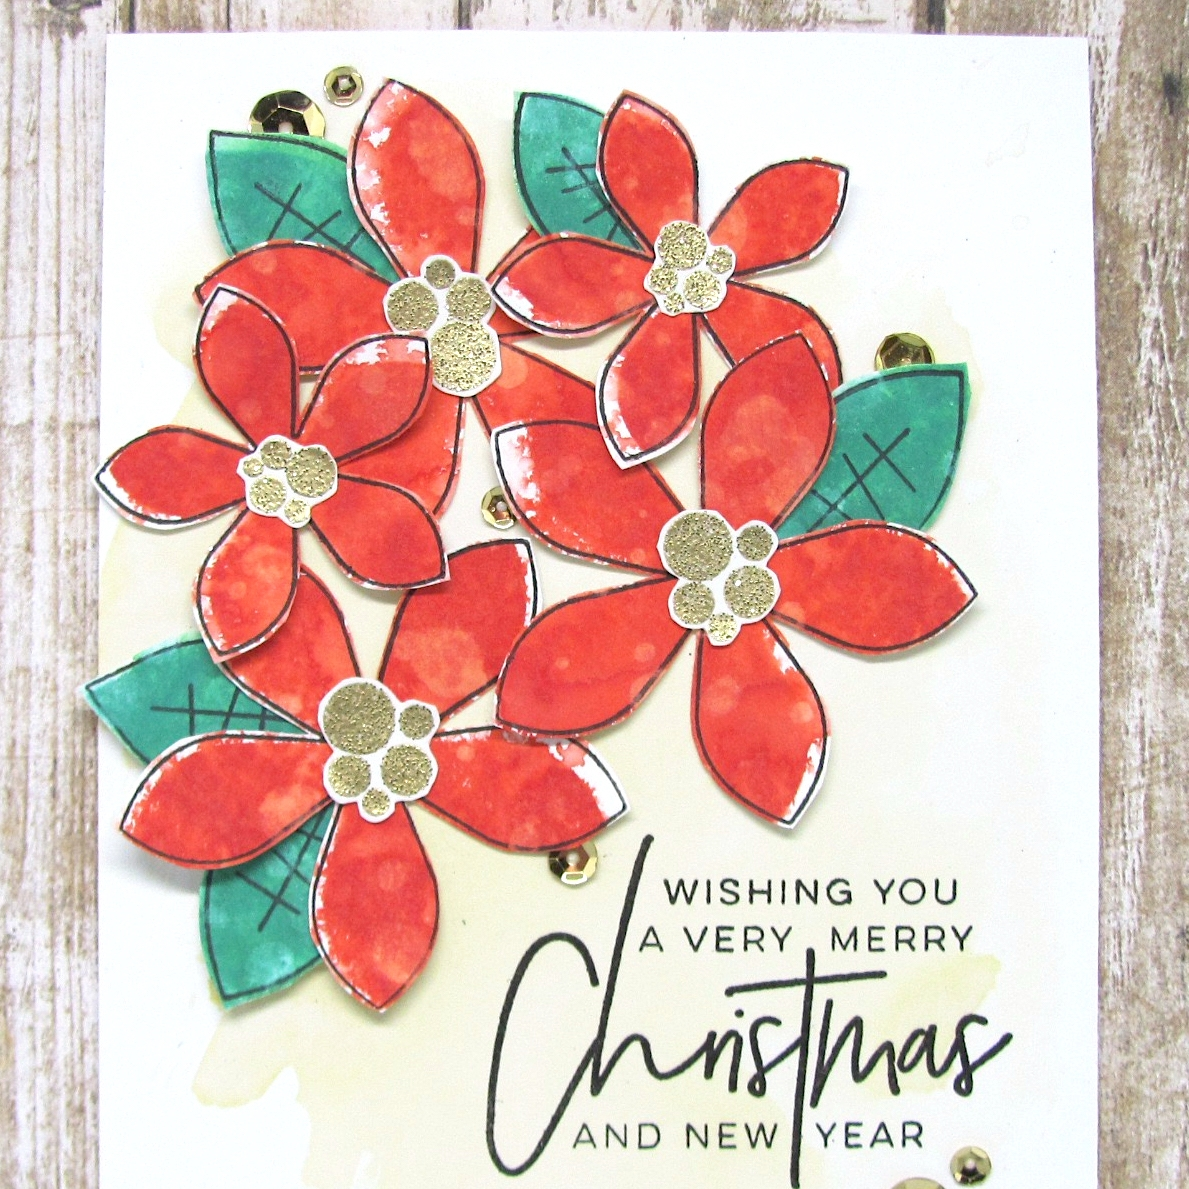 Merry+Christmas+Poinsettia+Card+Using+Distress+Oxide+Inks+by+Holly+--+rightathomeshop.com-blog.jpeg